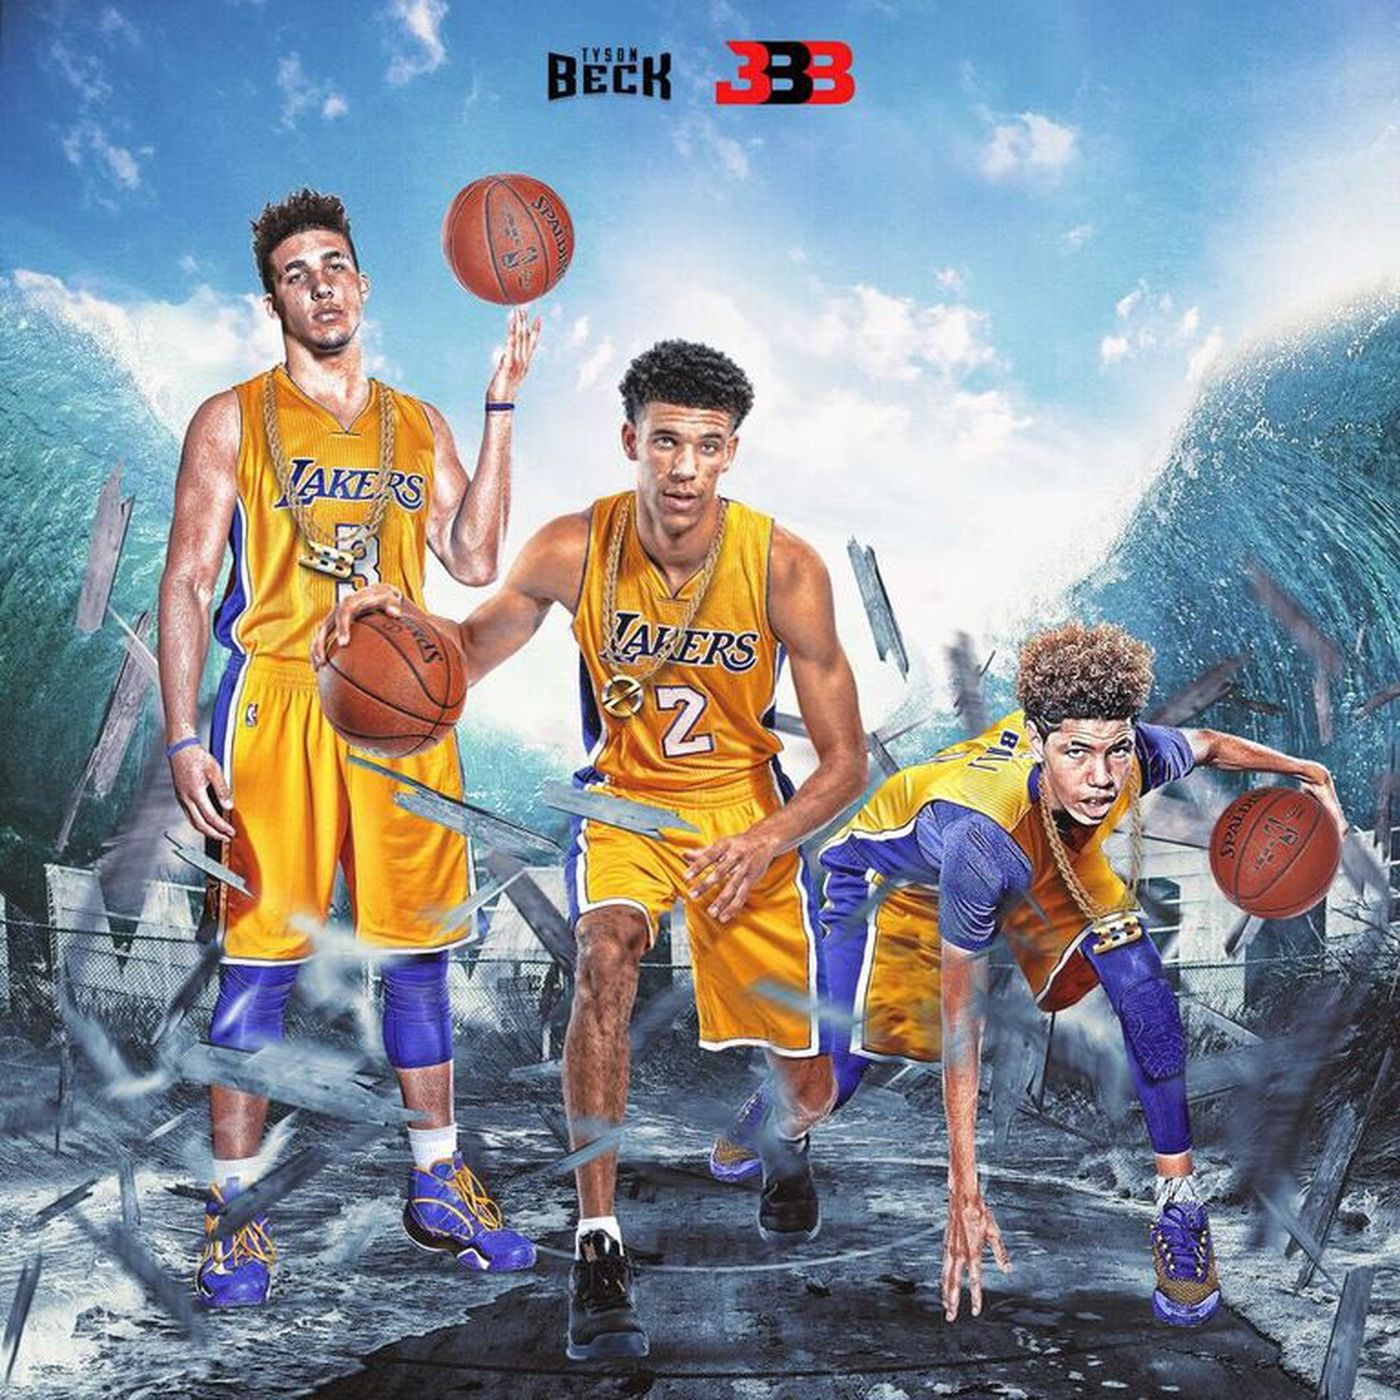 Big Baller Brand is photoshopping the entire Ball family as Lakers into existence